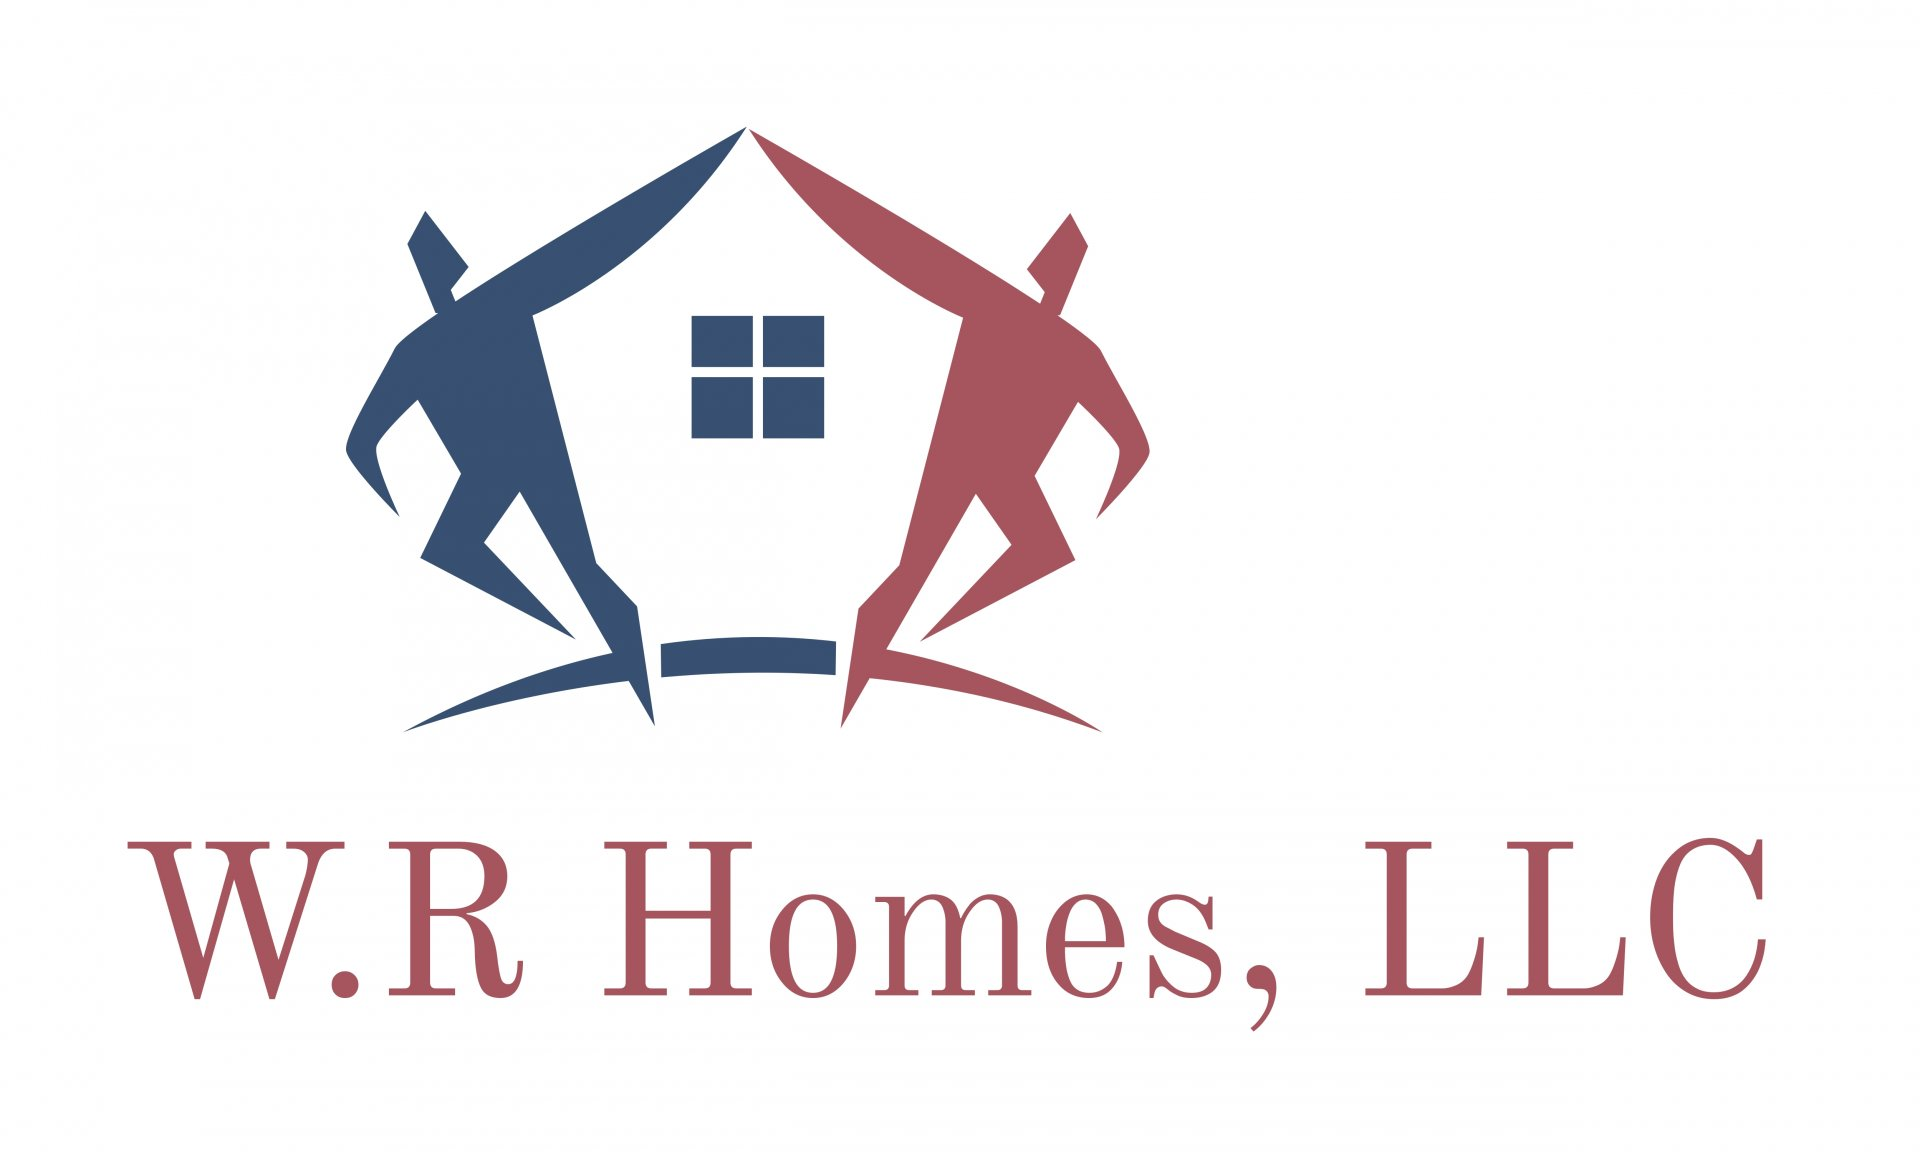 WR homes, LLC logo